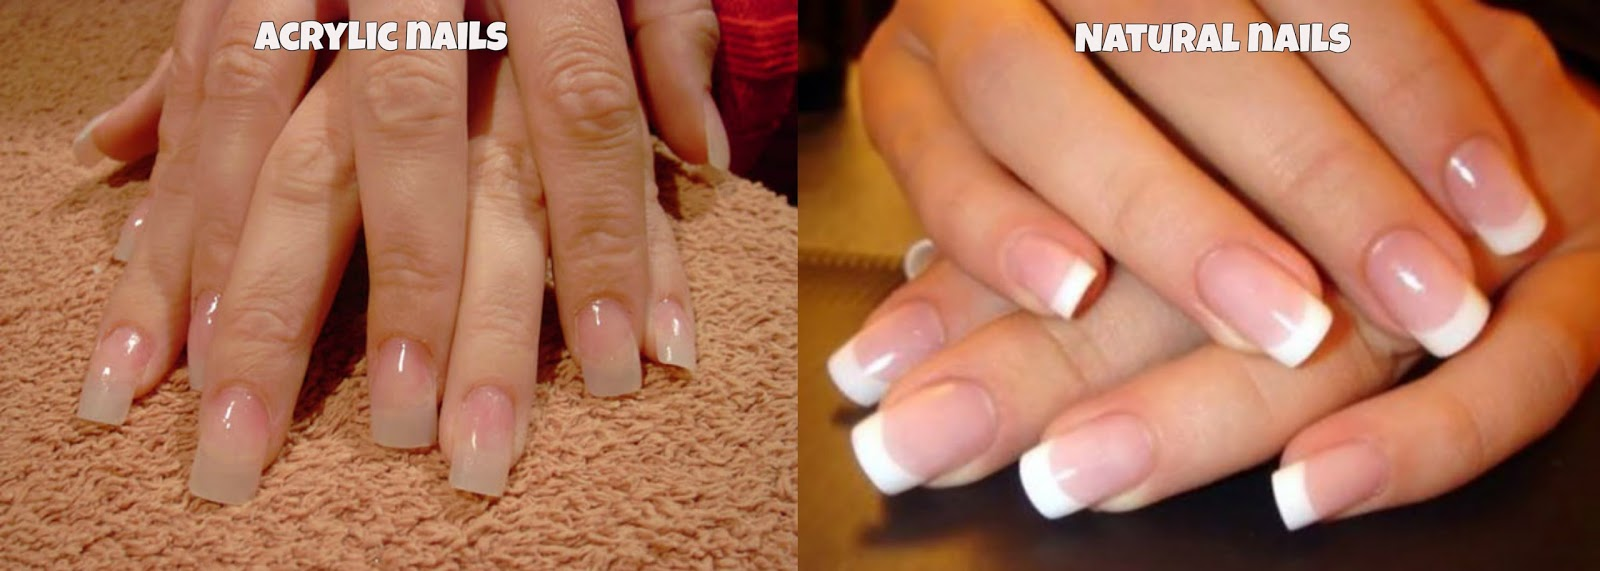 Difference between Acrylic and real nails